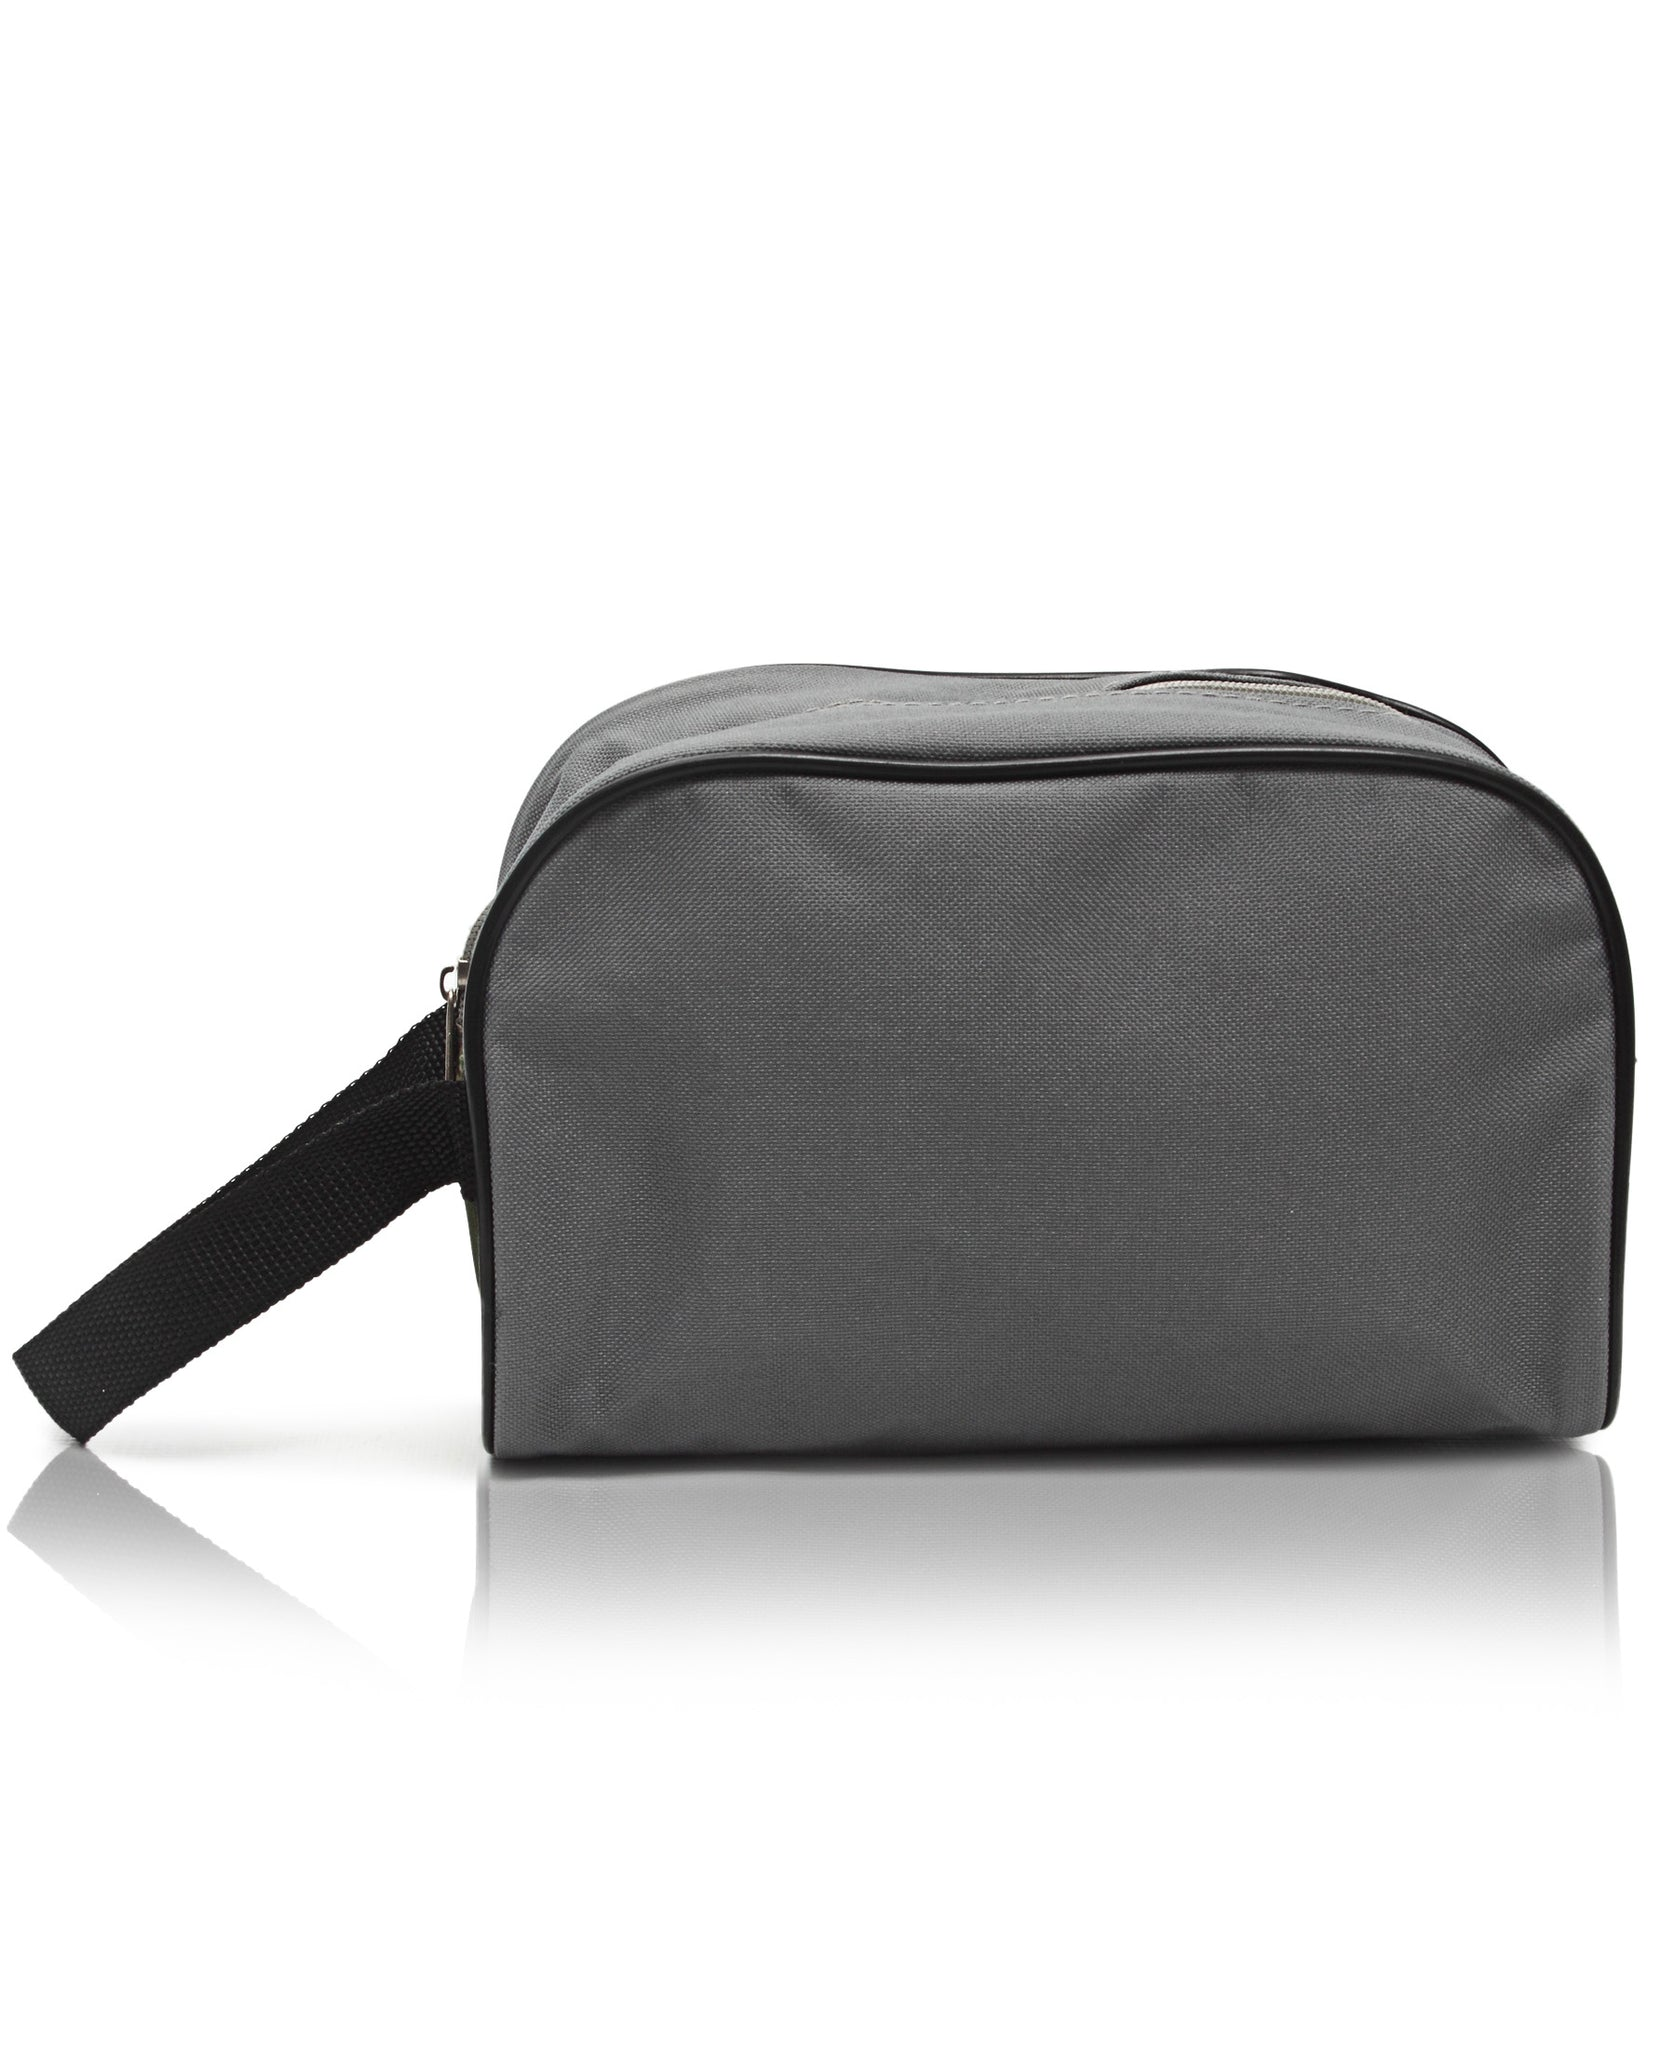 Men's Toiletry Bag - Grey